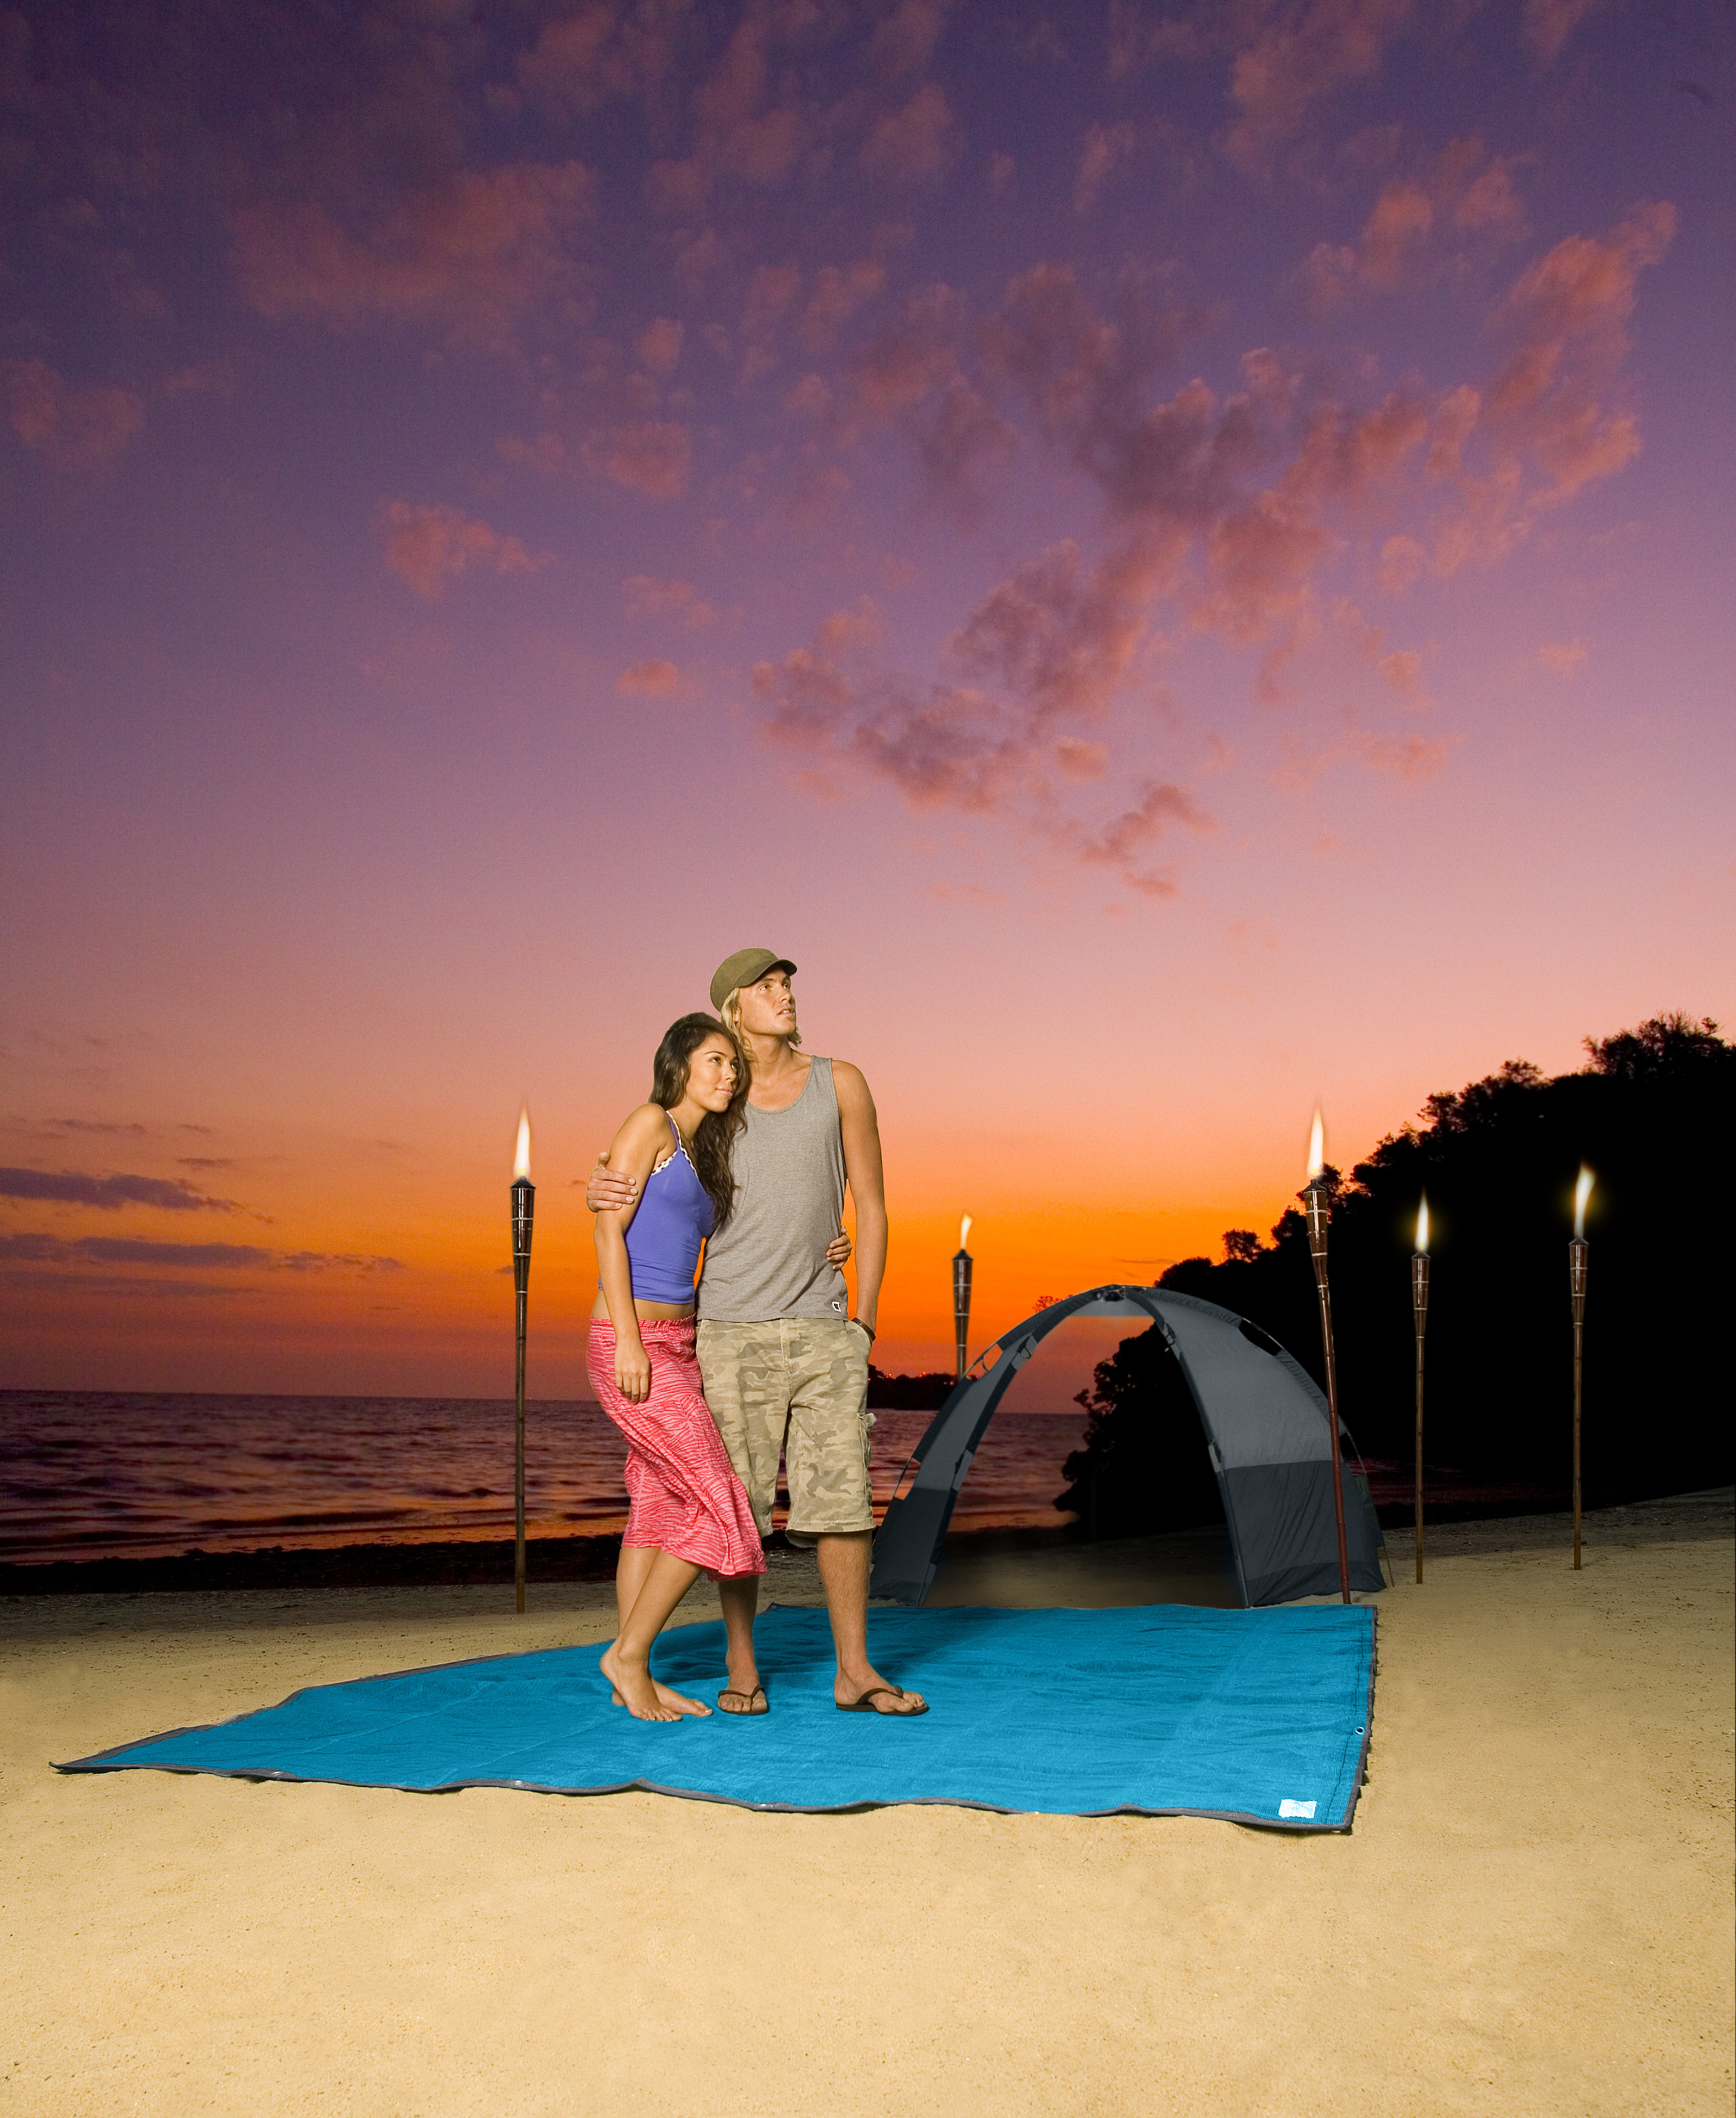 Enjoy a Sand-Free Campsite With the CGear Multimat